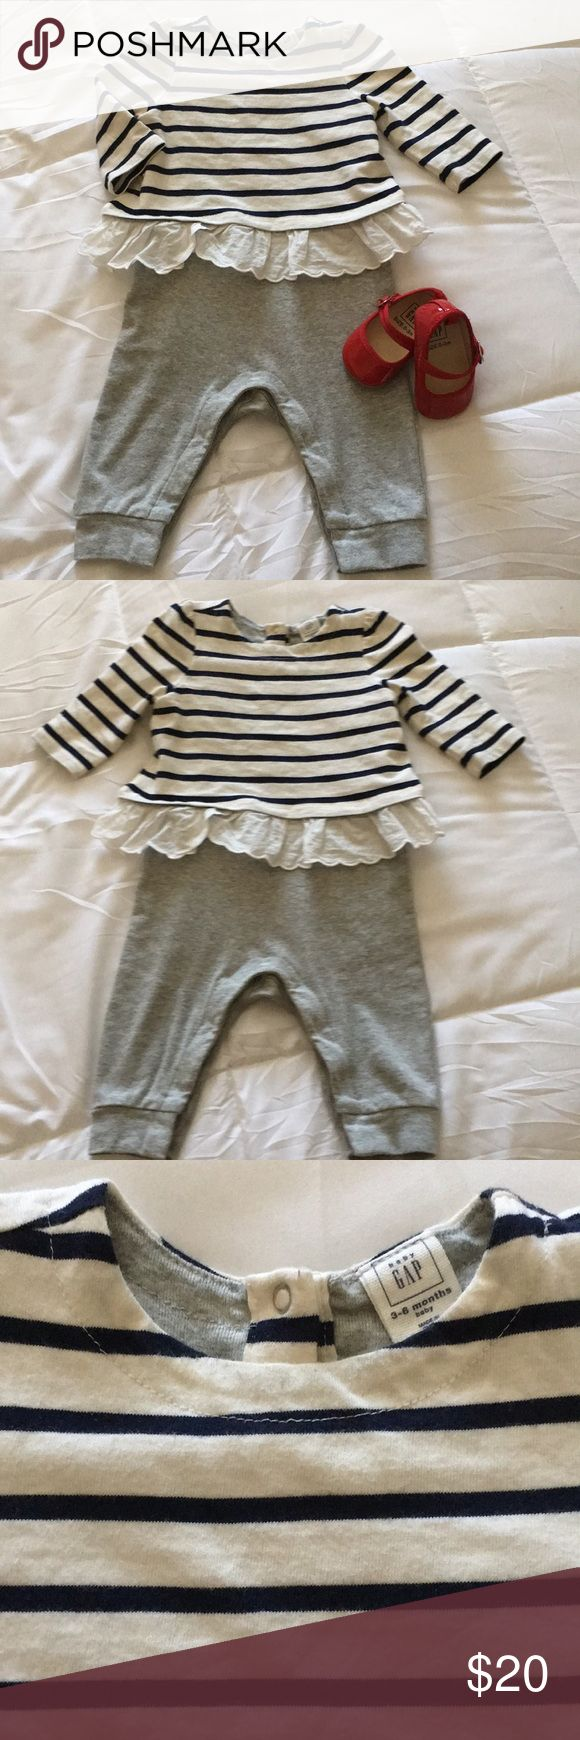 BabyGAP Nautical One Piece/Red Mary Jane Flat Great Condition BabyGAP Triple-Layer one piece Romper (3-6m). Navy/Ivory Stripe. 100% Cotton. No holes or stains. Snaps up the back and on the legs. Listing also includes Red Patent Mary Jane Flats in size (0-3m). Velcro strap for ease on and off. Padded sole. Like New! Note: Baby shoes run large. My daughter wore 0-3m w/all her 3-6m outfits. GAP One Pieces